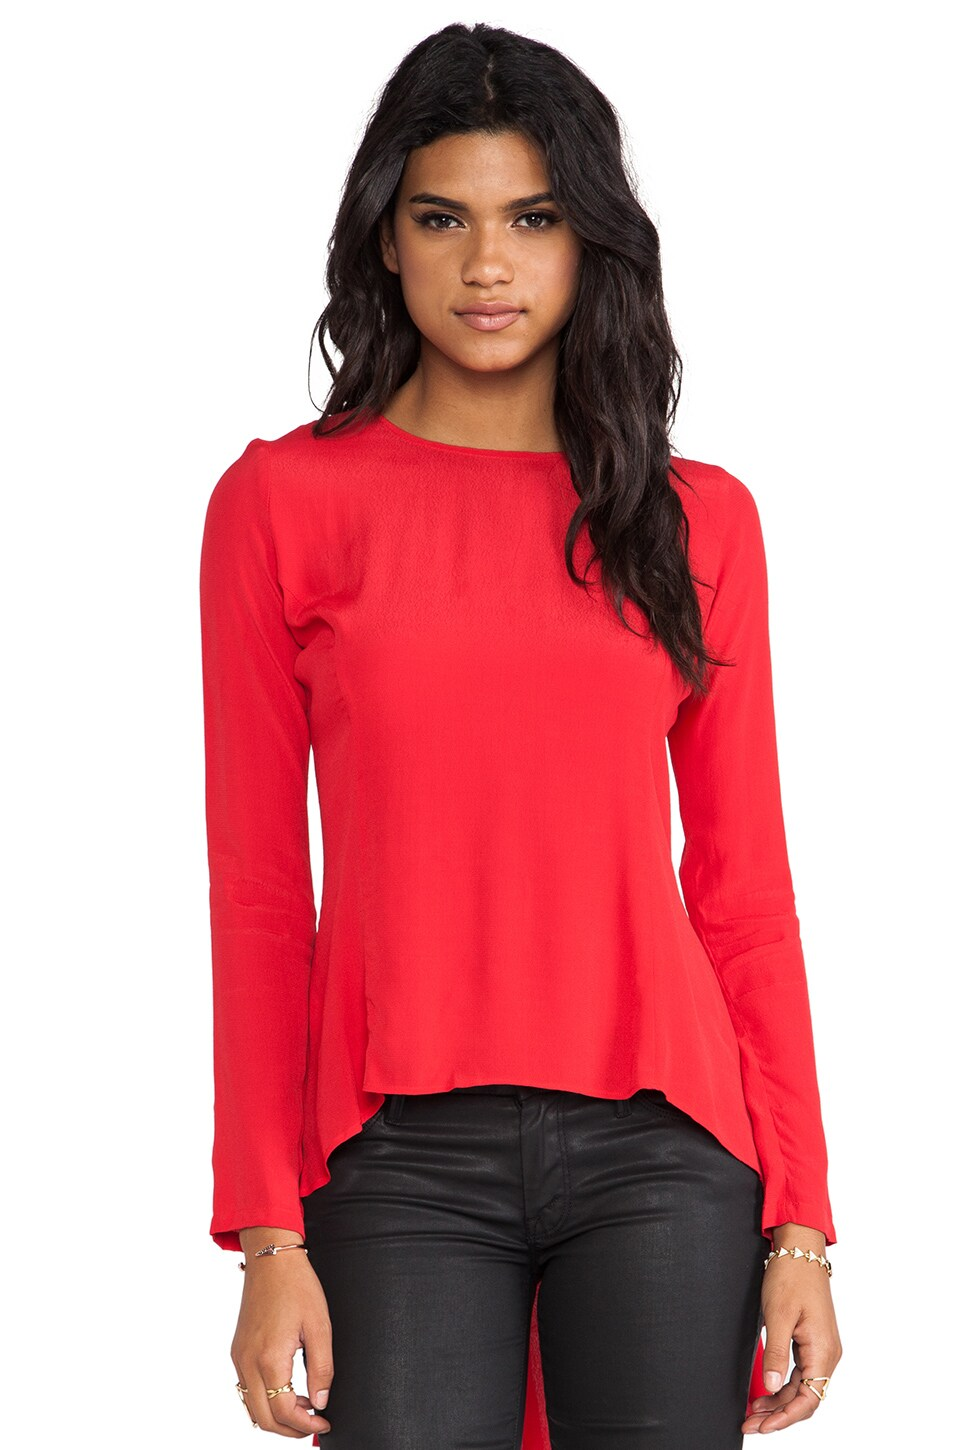 Backstage Long Sleeve Express Yourself Top in Red